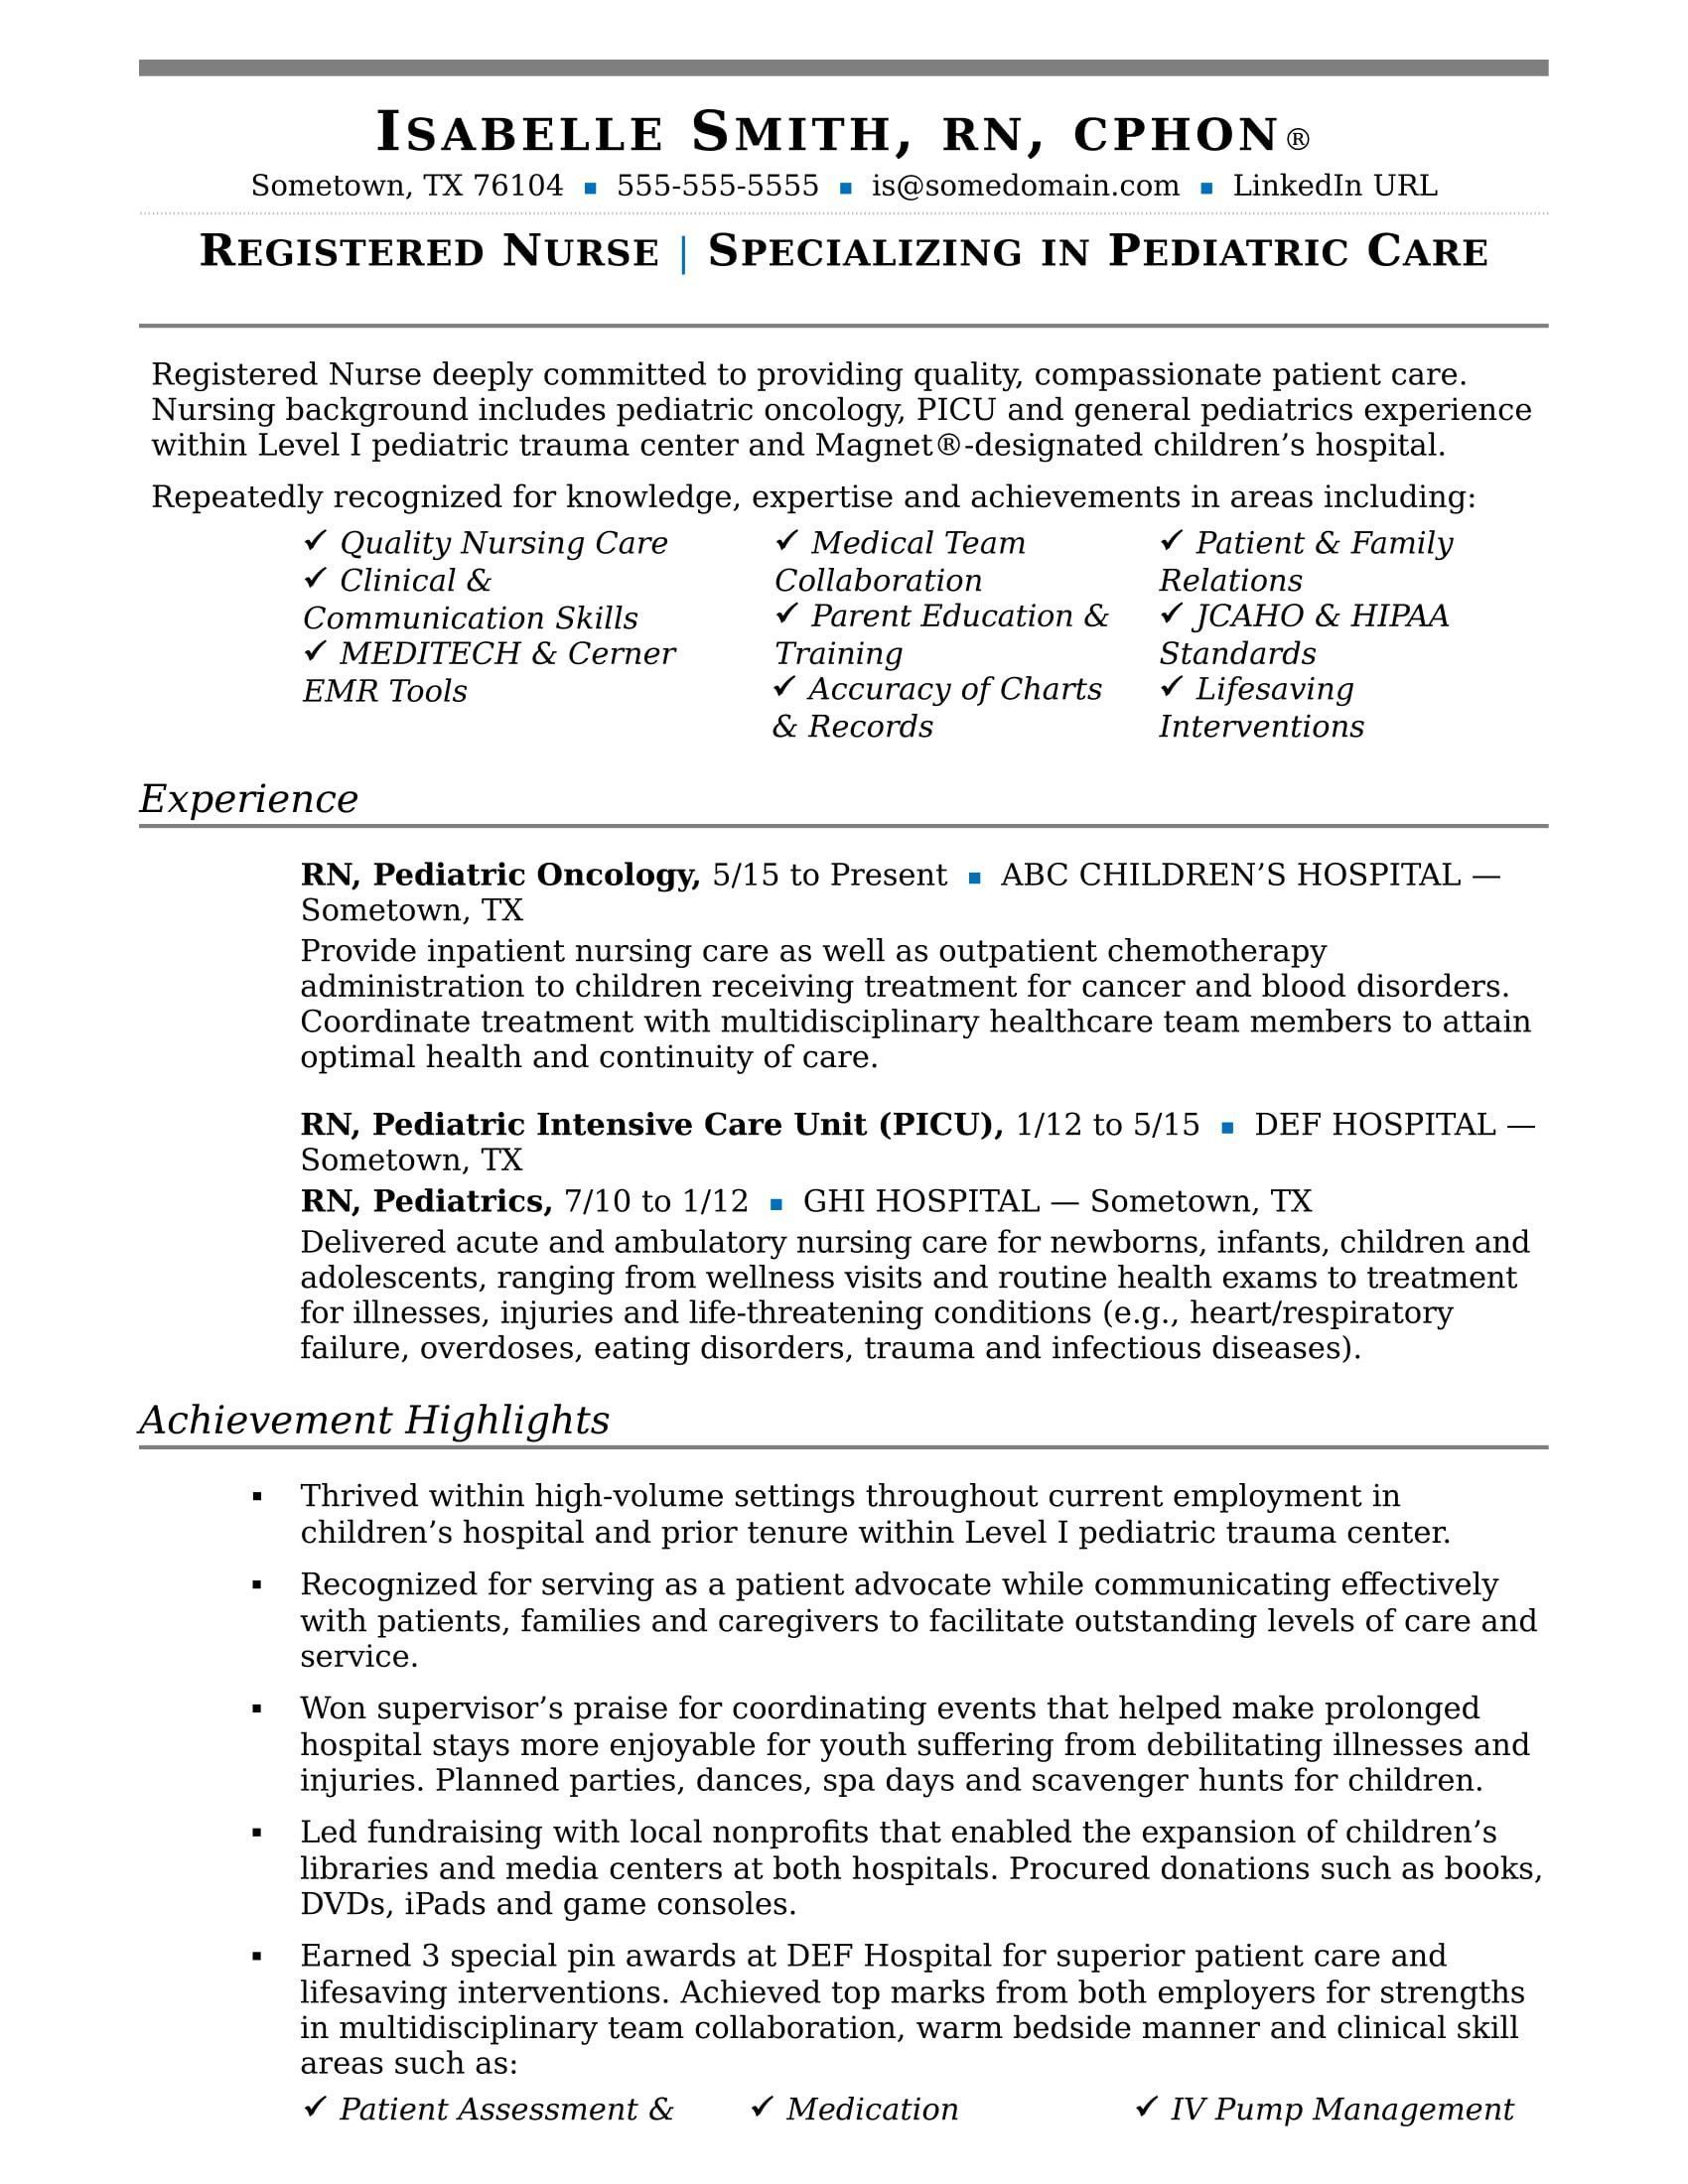 Resume Template for Nursing Very Good Nurse Resume Sample